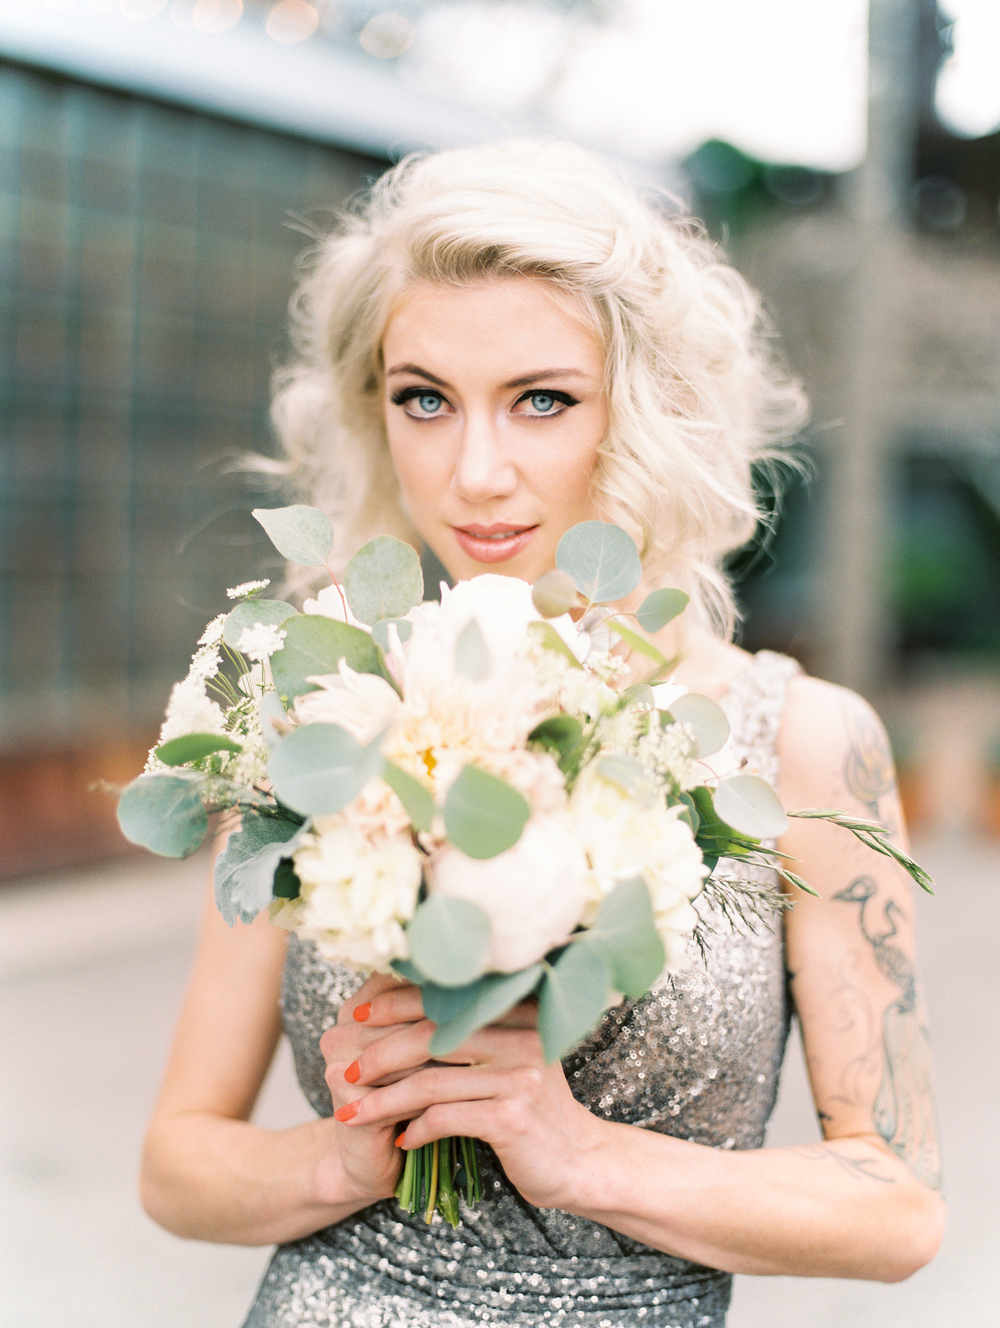 Blanc-Denver-wedding-inspiration-by-Lisa-O'Dwyer-Denver-fine-art-wedding-photographer-1.jpg